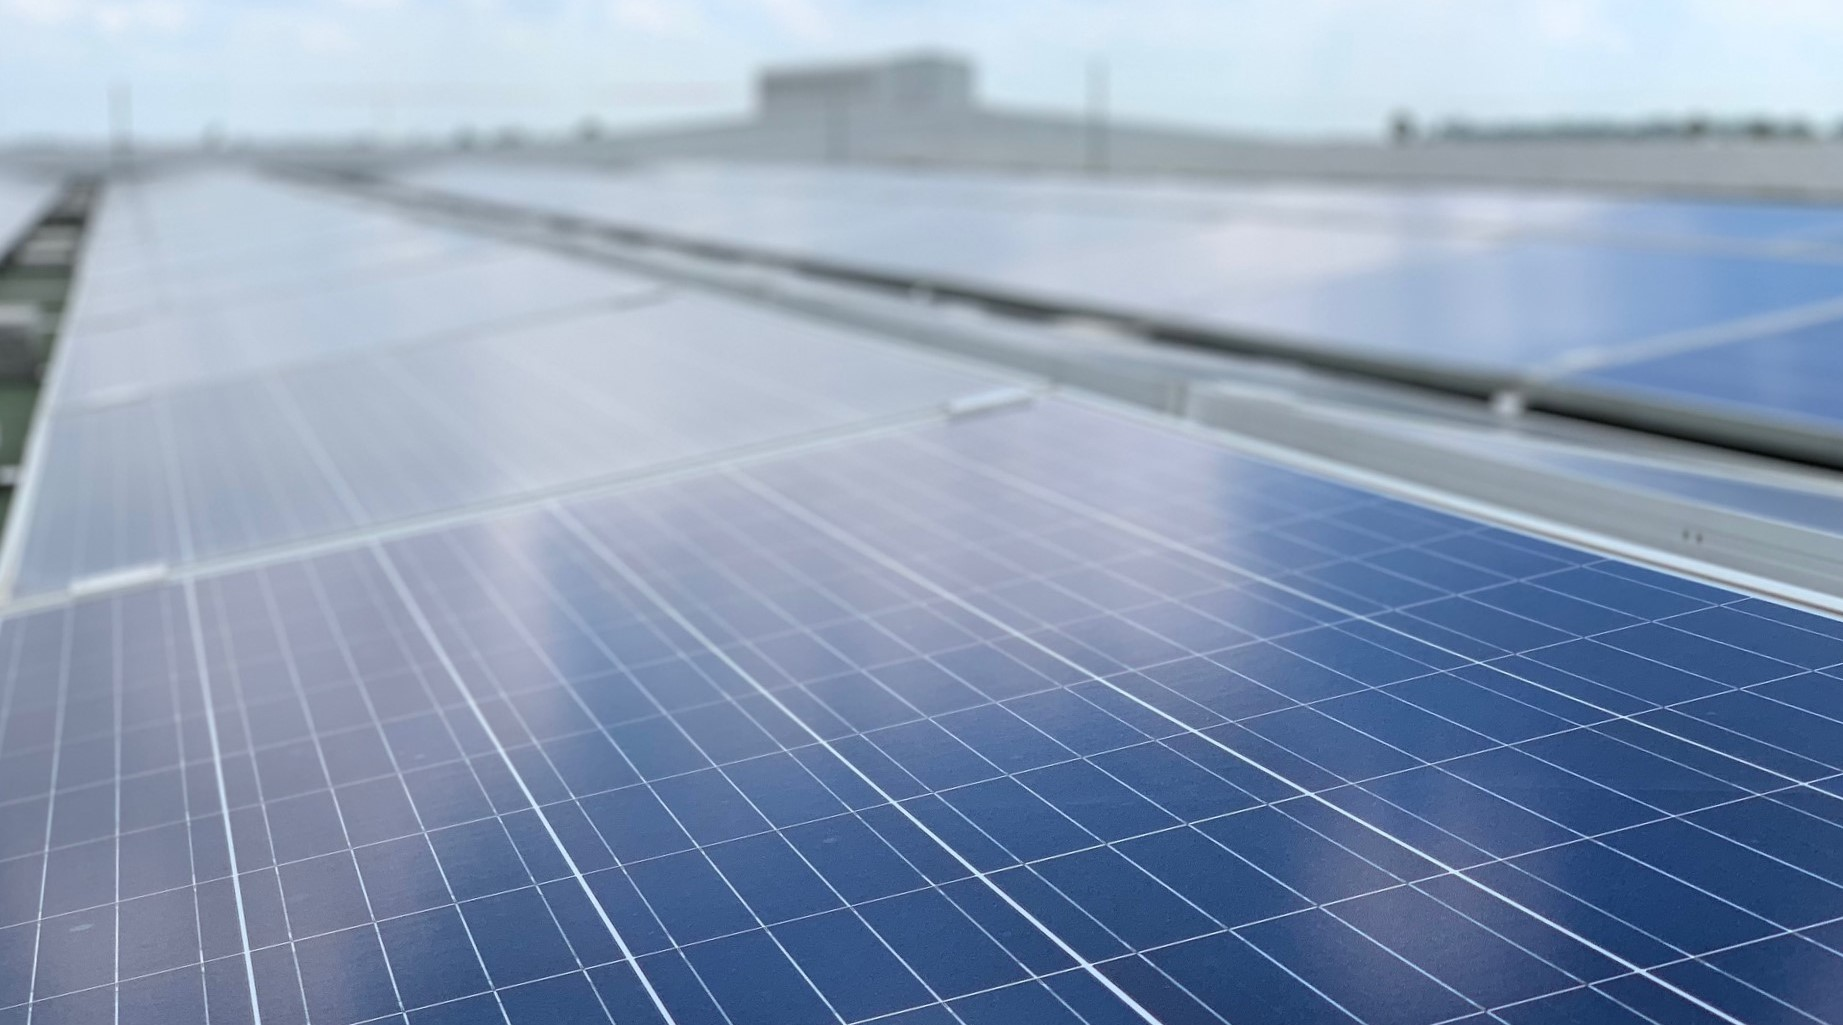 C&I specialist Cleantech Solar Asia and LYS Energy Solutions have signed an agreement with SP to place their solar assets on the marketplace for sale of RECs. Credit: Cleantech Solar